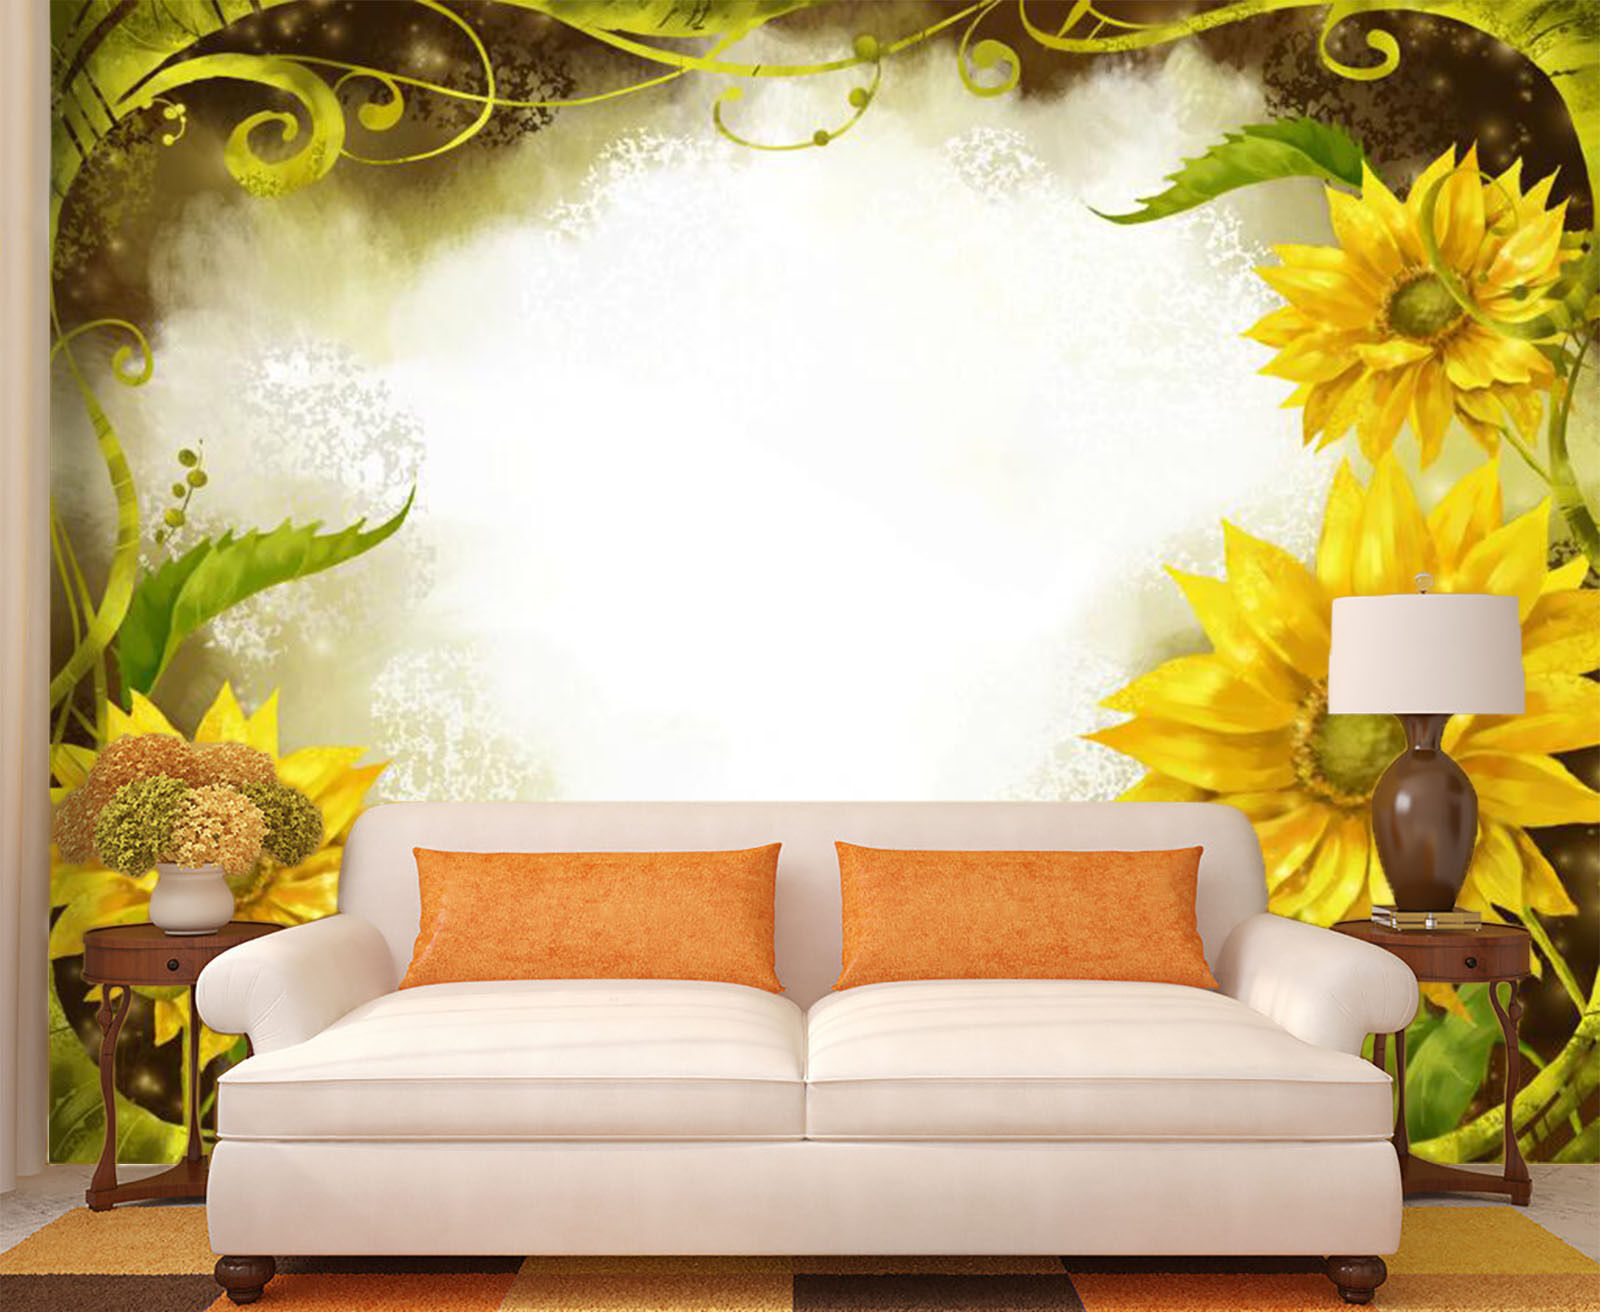 3D Bright Sunflower 929 Wall Paper Wall Print Decal Wall Deco Indoor Wall